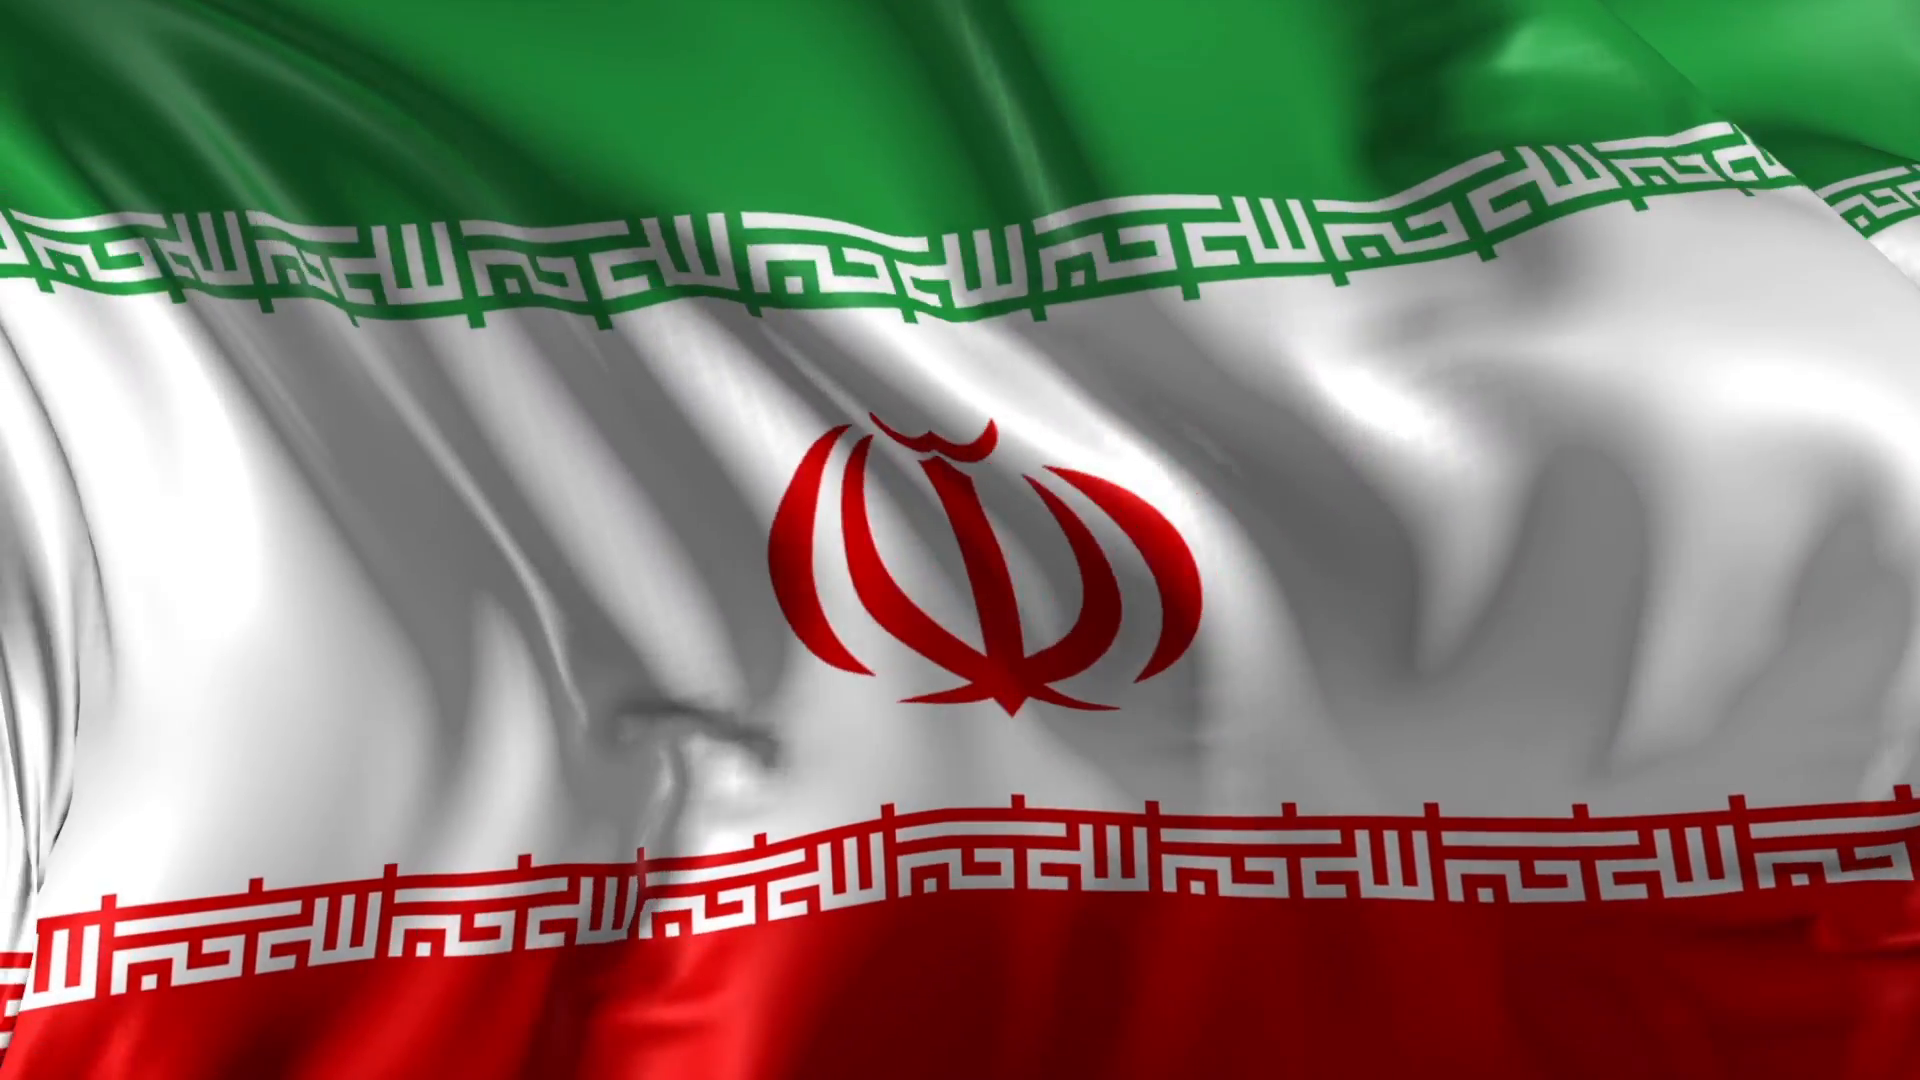 Flag Of Iran Beautiful 3d Animation Of Iran Flag In Loop Mode Border Iran Flag Animation Background